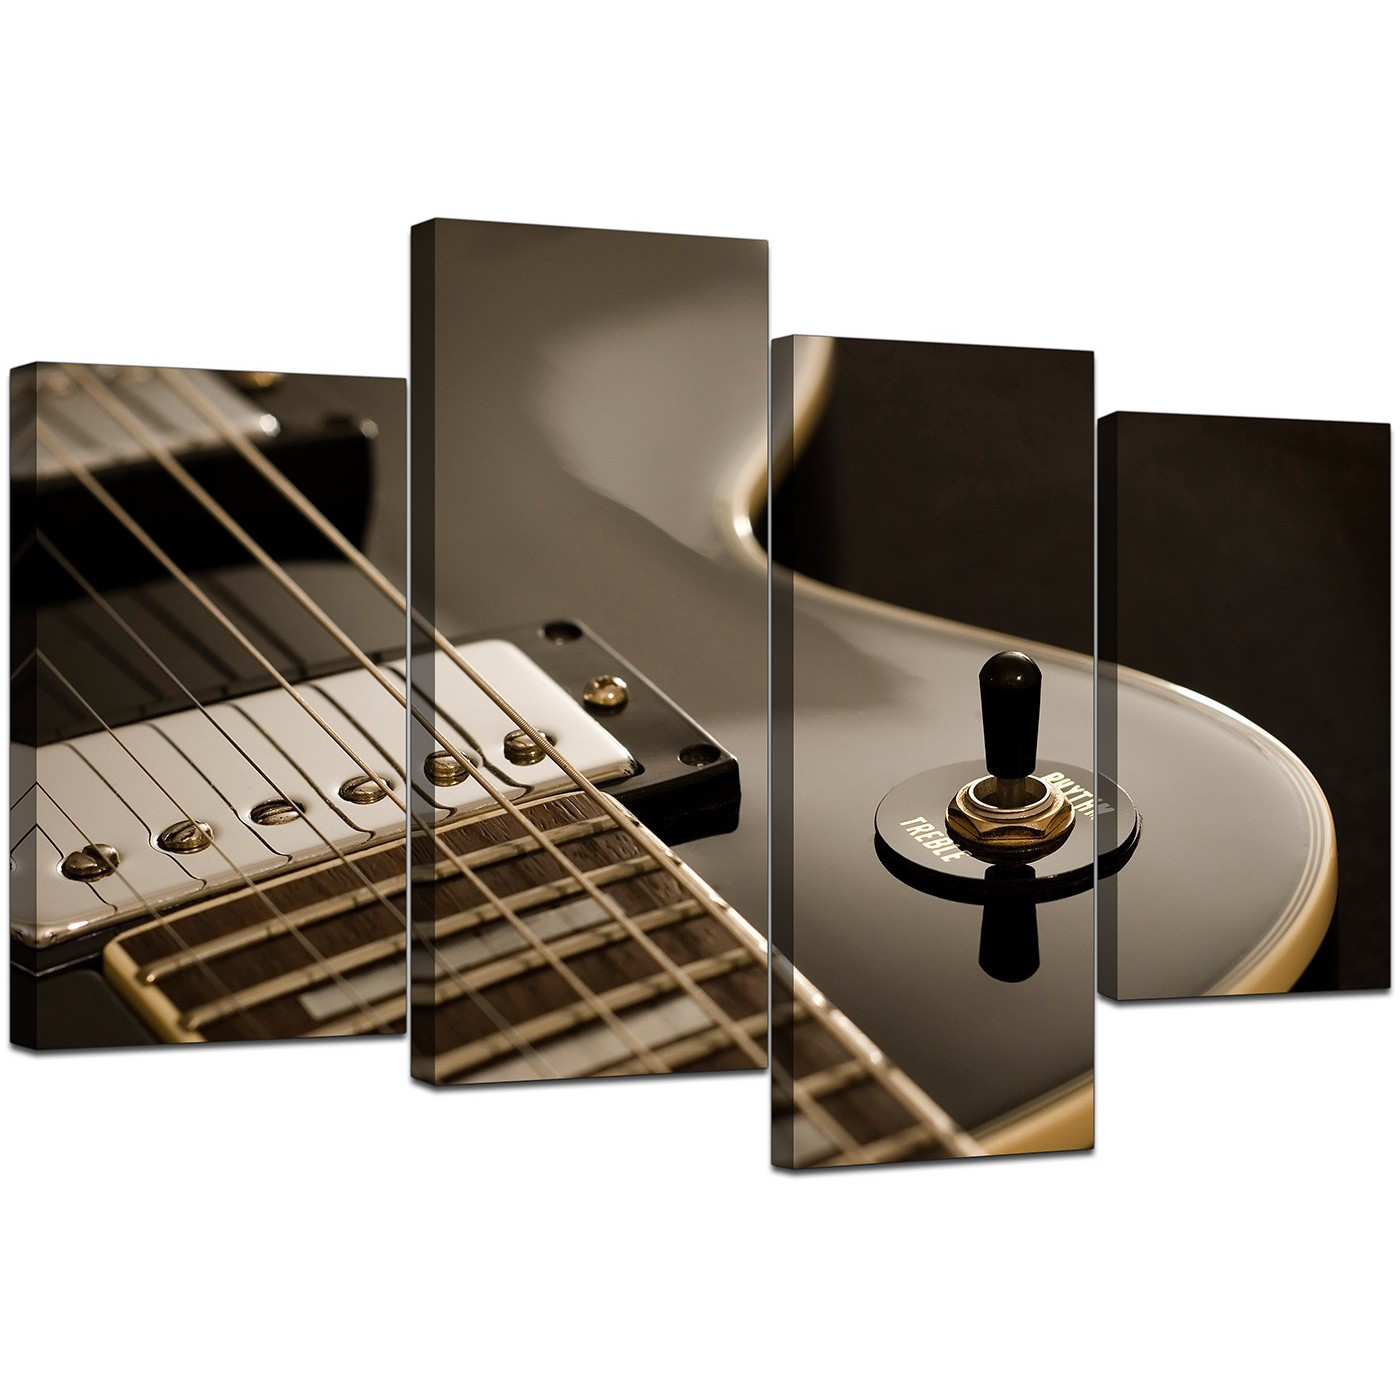 Canvas Prints of Guitar in BlackWhite for your Teenage Boys Bedroom